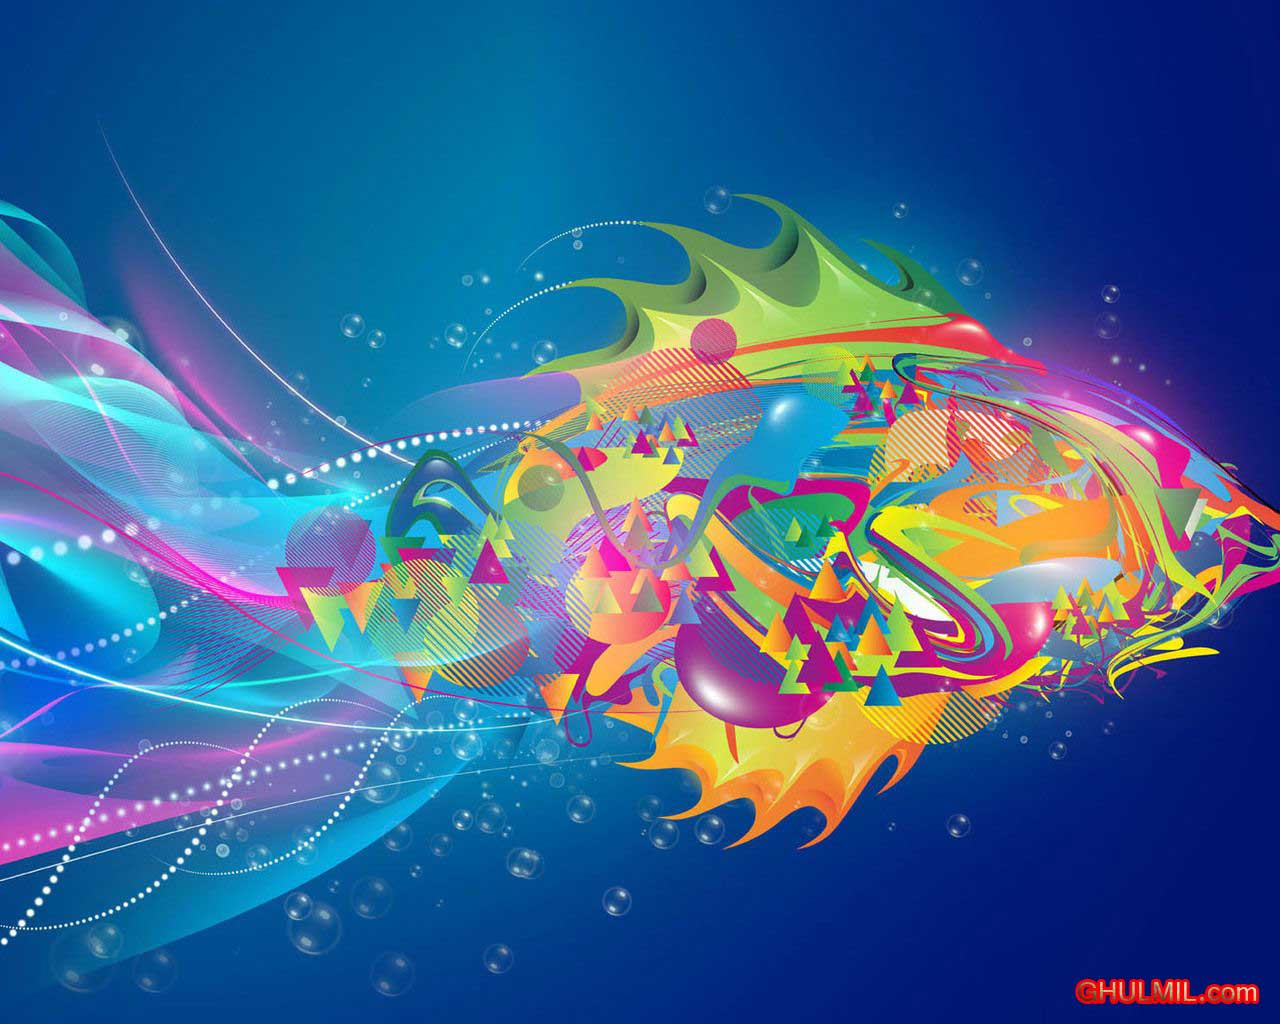 3D Beautiful Colourful Wallpapers For Desktop Laptop Background 1280x1024